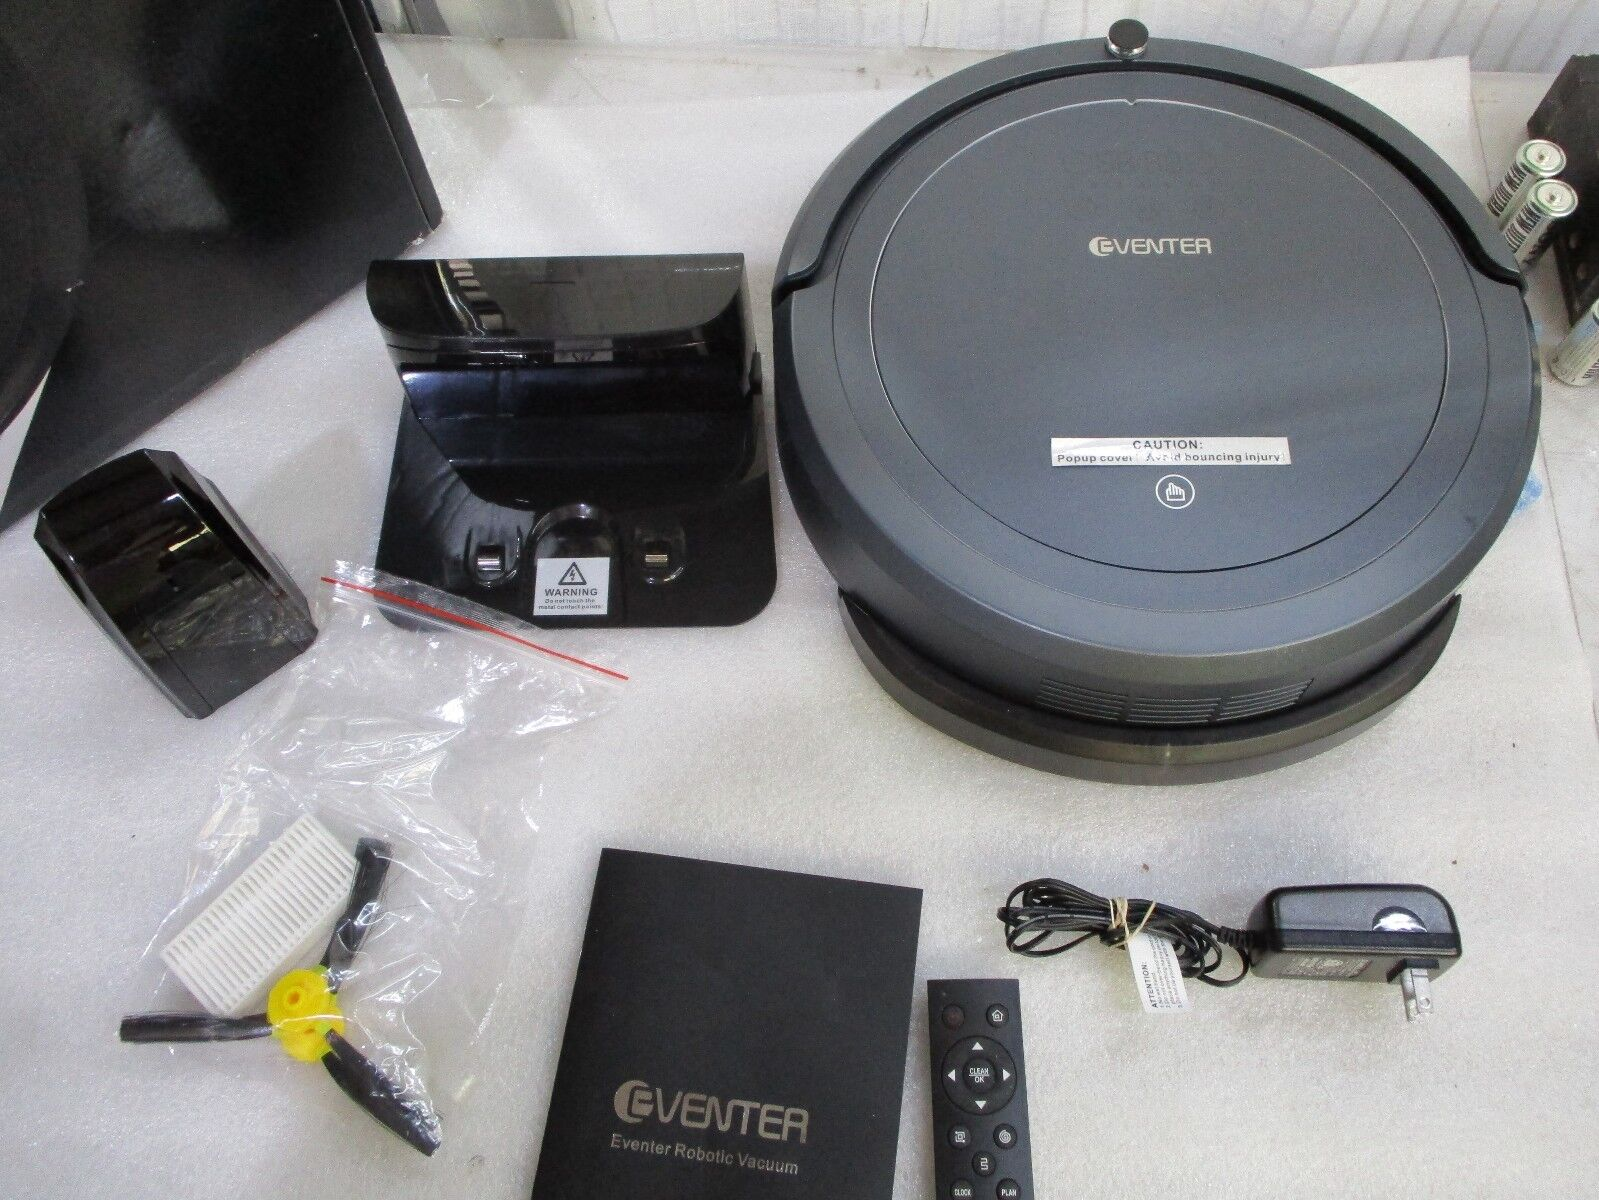 EVENTER Auto Robot Vacuum Cleaner Robot with Powerful Suction, Model E6008